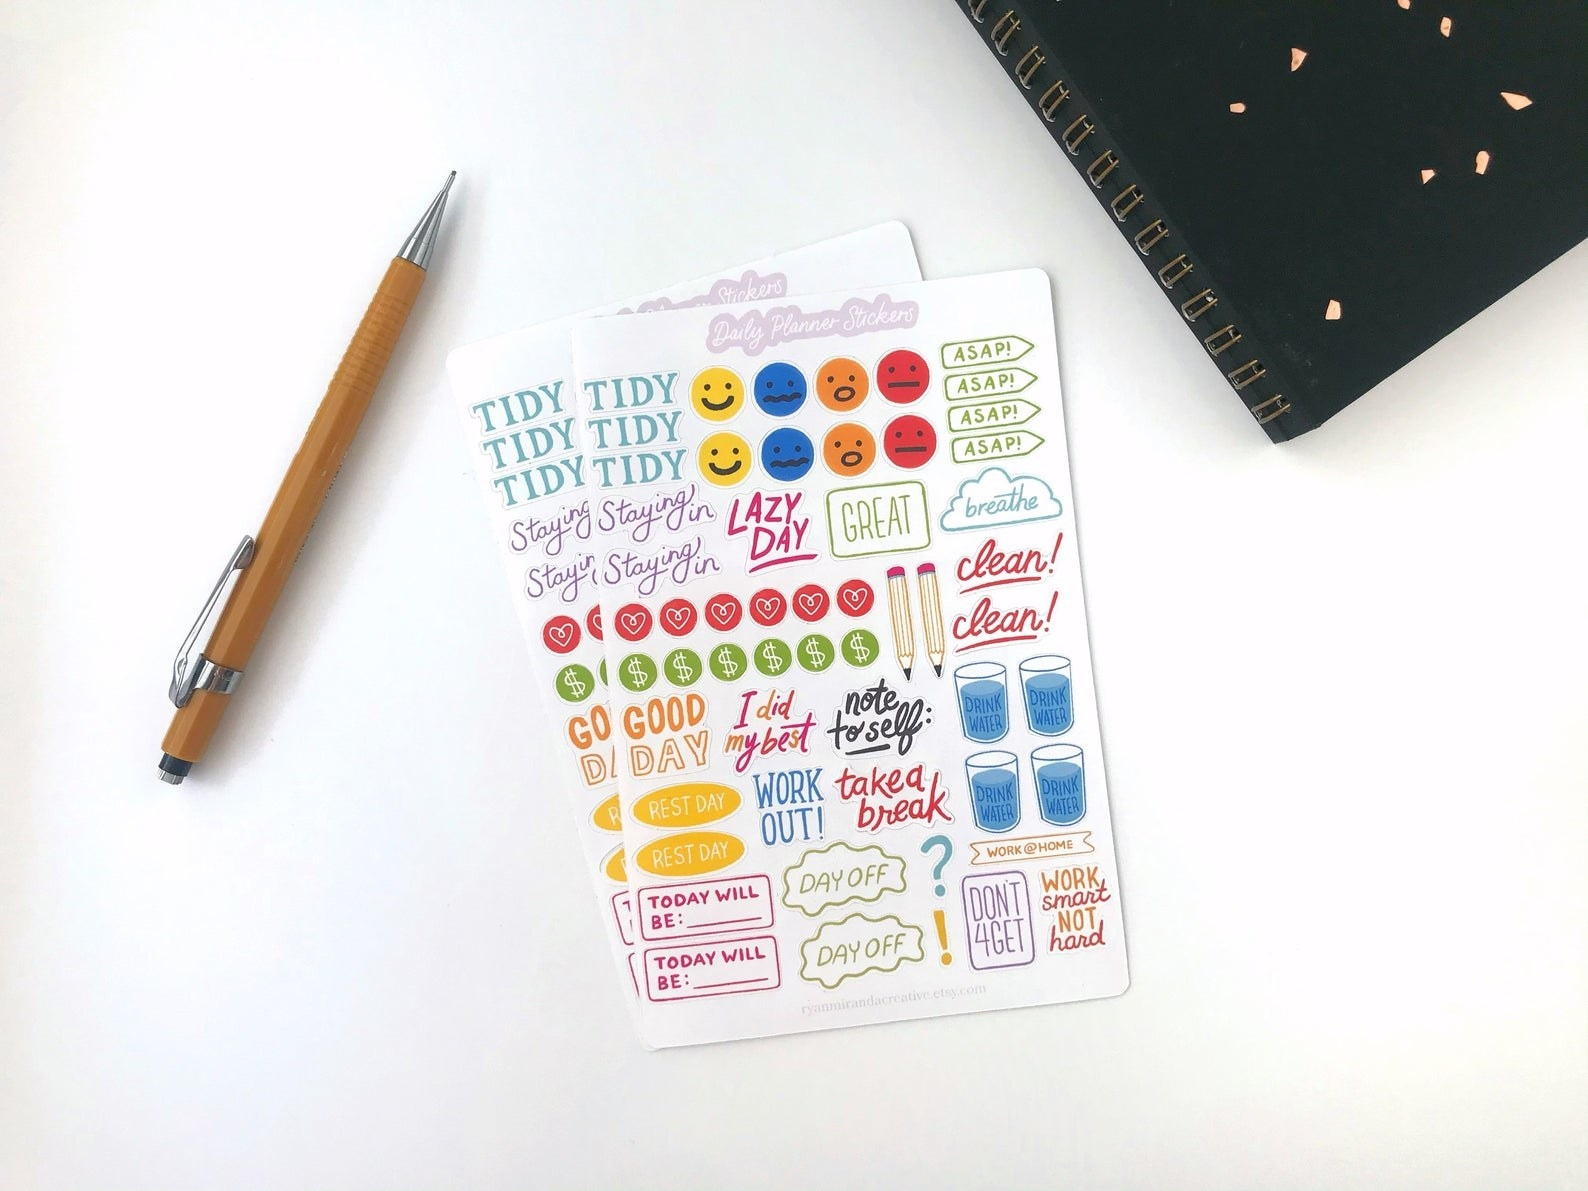 Two packs of stickers with text reminders for tasks